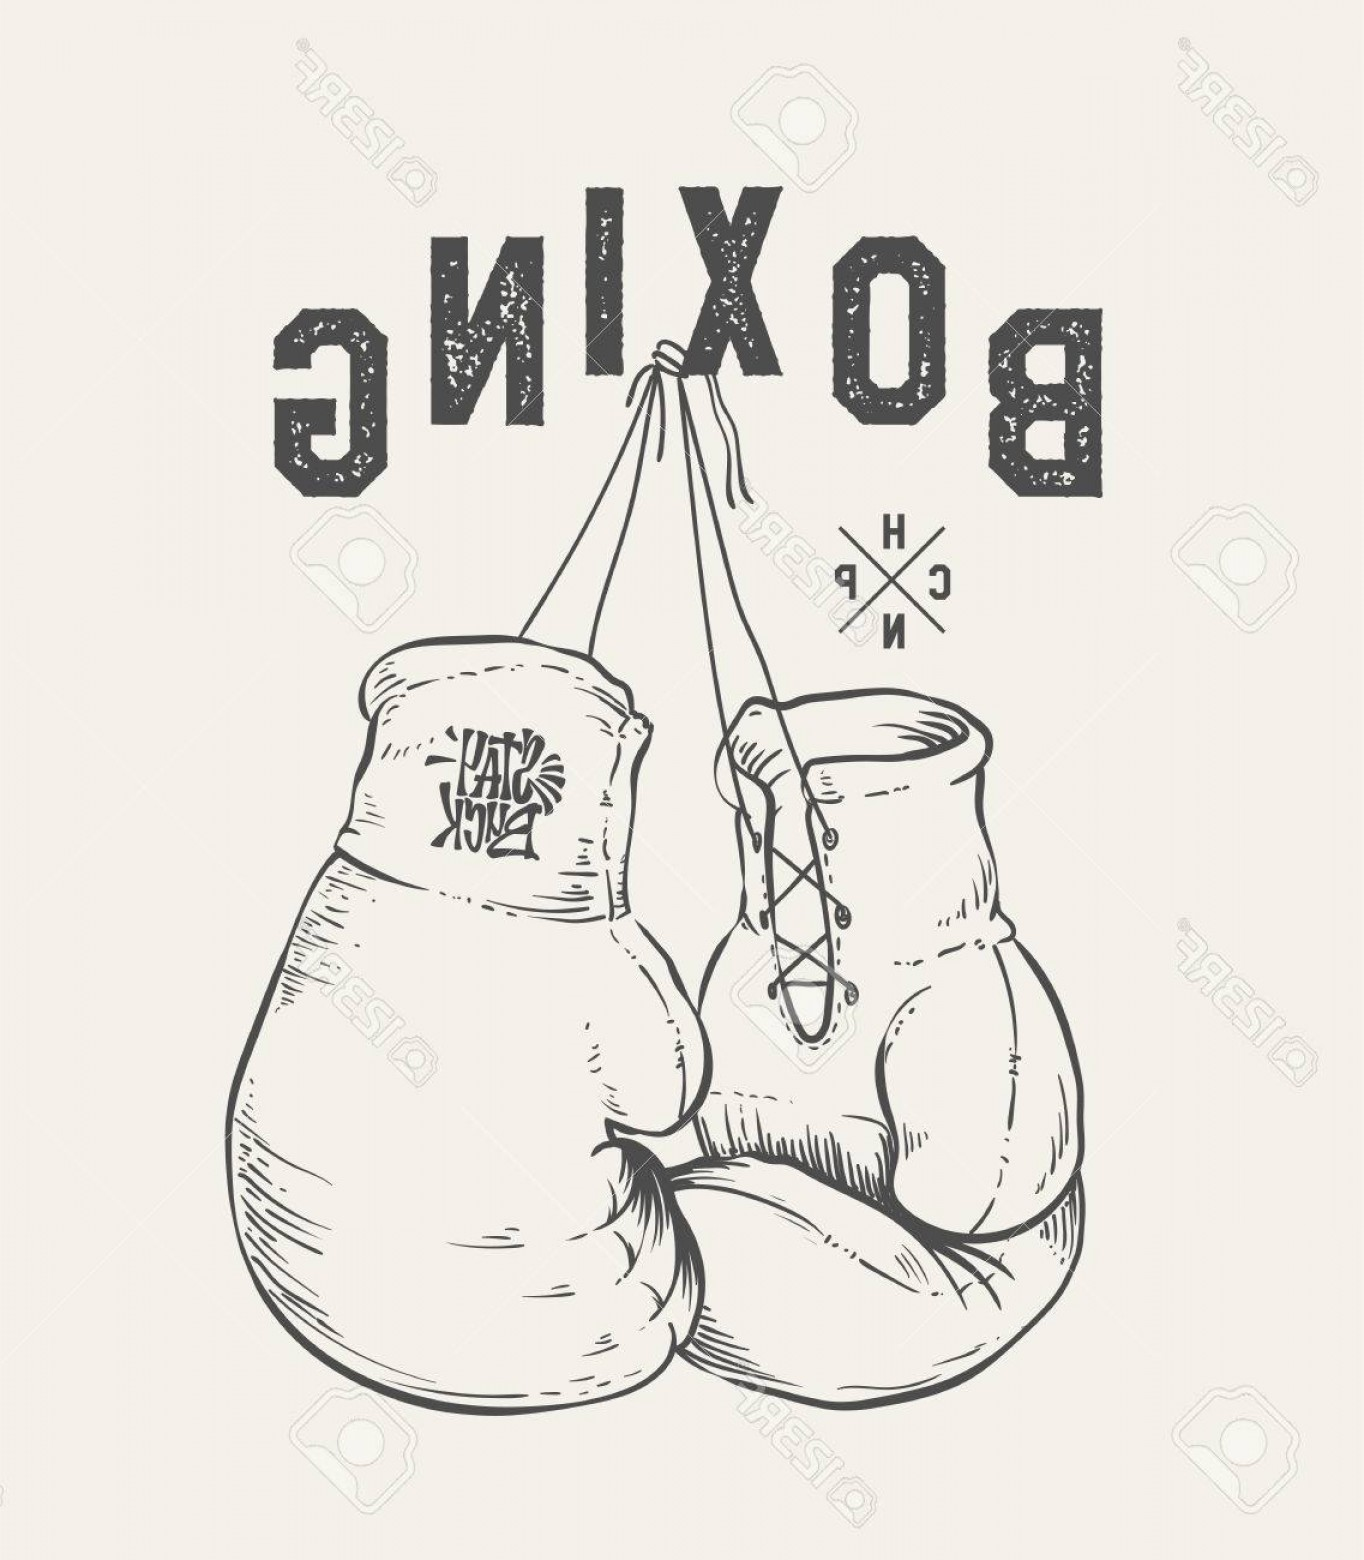 Pictures Of Boxing Gloves Vector Art: Photostock Vector Boxing Gloves Vector Illustration Print Design T Shirt